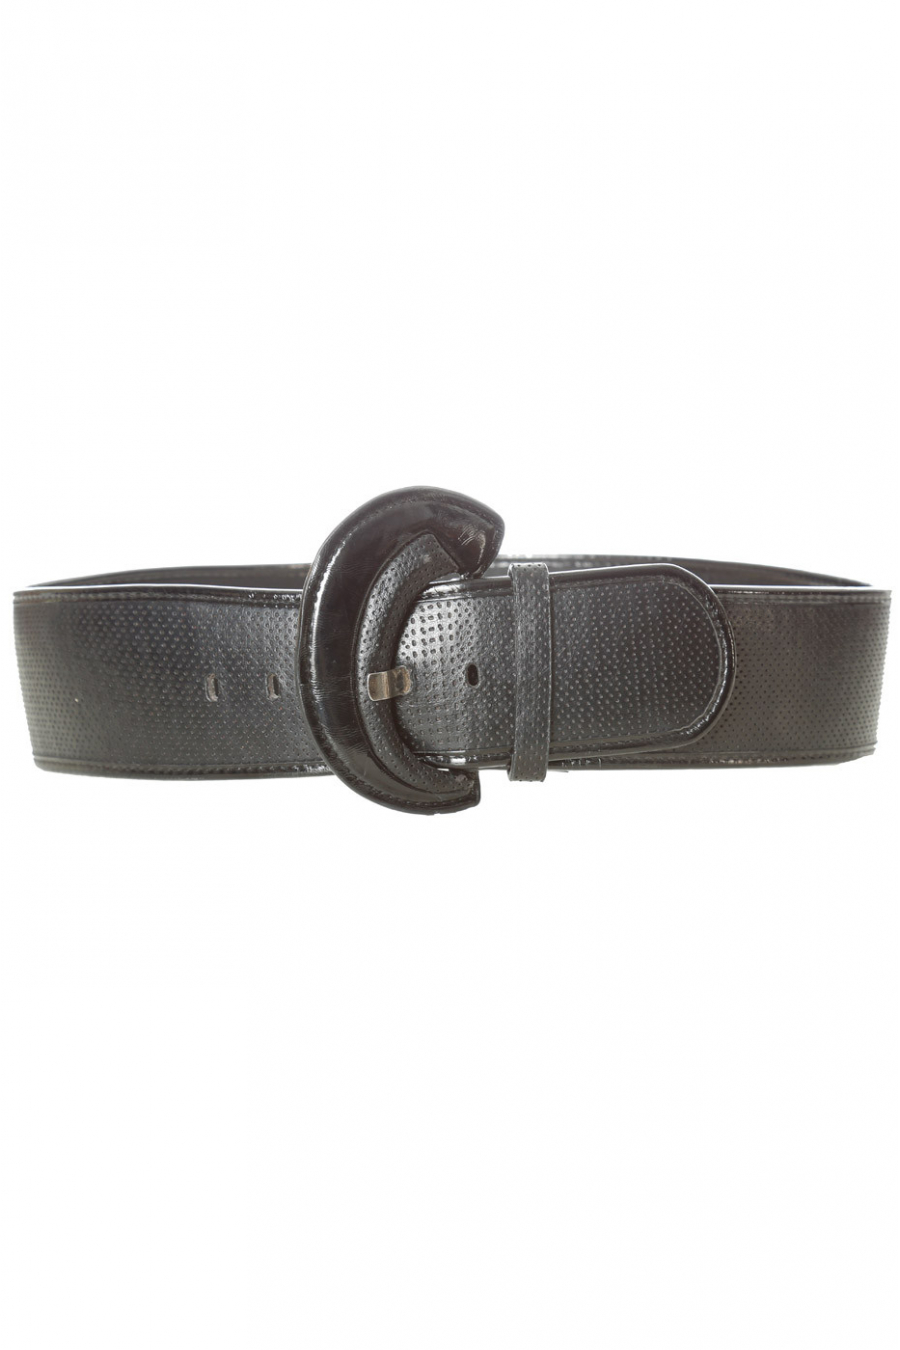 Black quilted style belt with shiny oval buckle. BG-0101